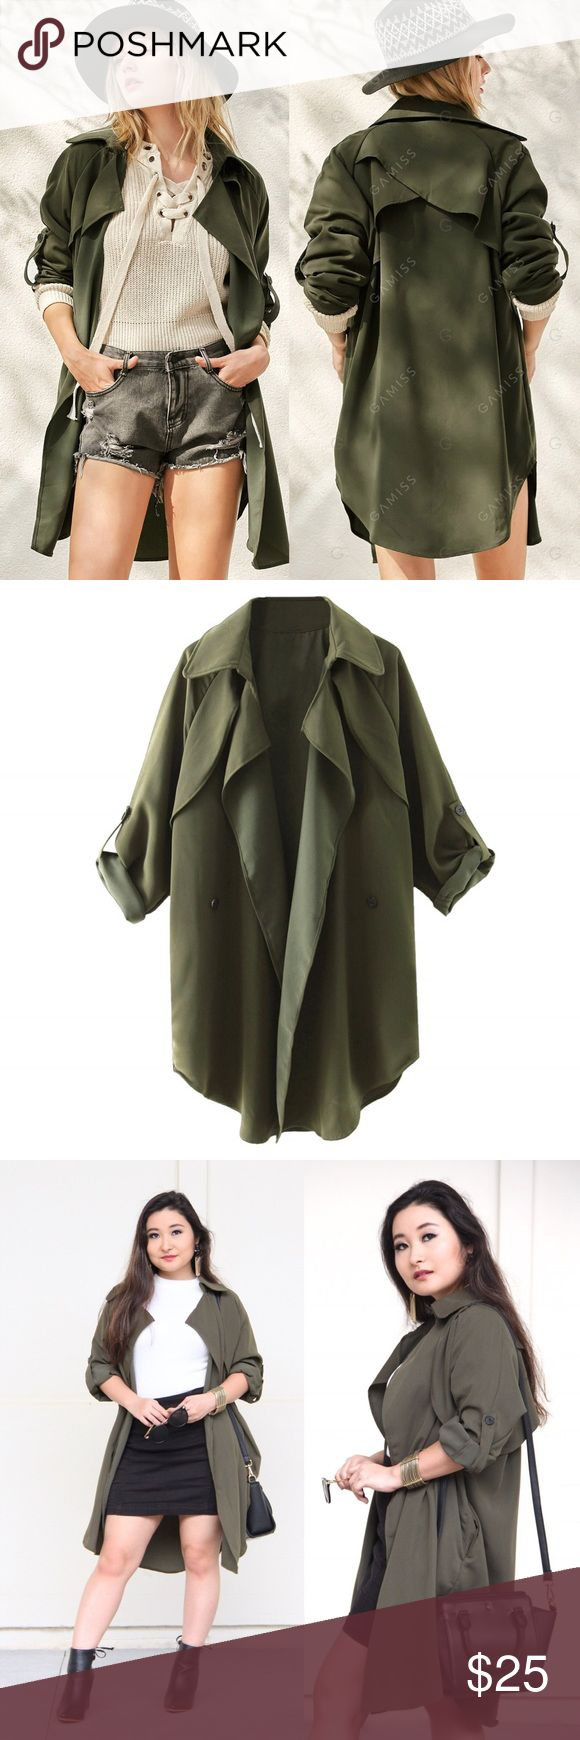 Olive Green Waterfall Trench Coat This loose-fitting trenchcoat is perfect for spring! Worn once for a photo shoot. Excellent condition! Gamiss Jackets & Coats Trench Coats